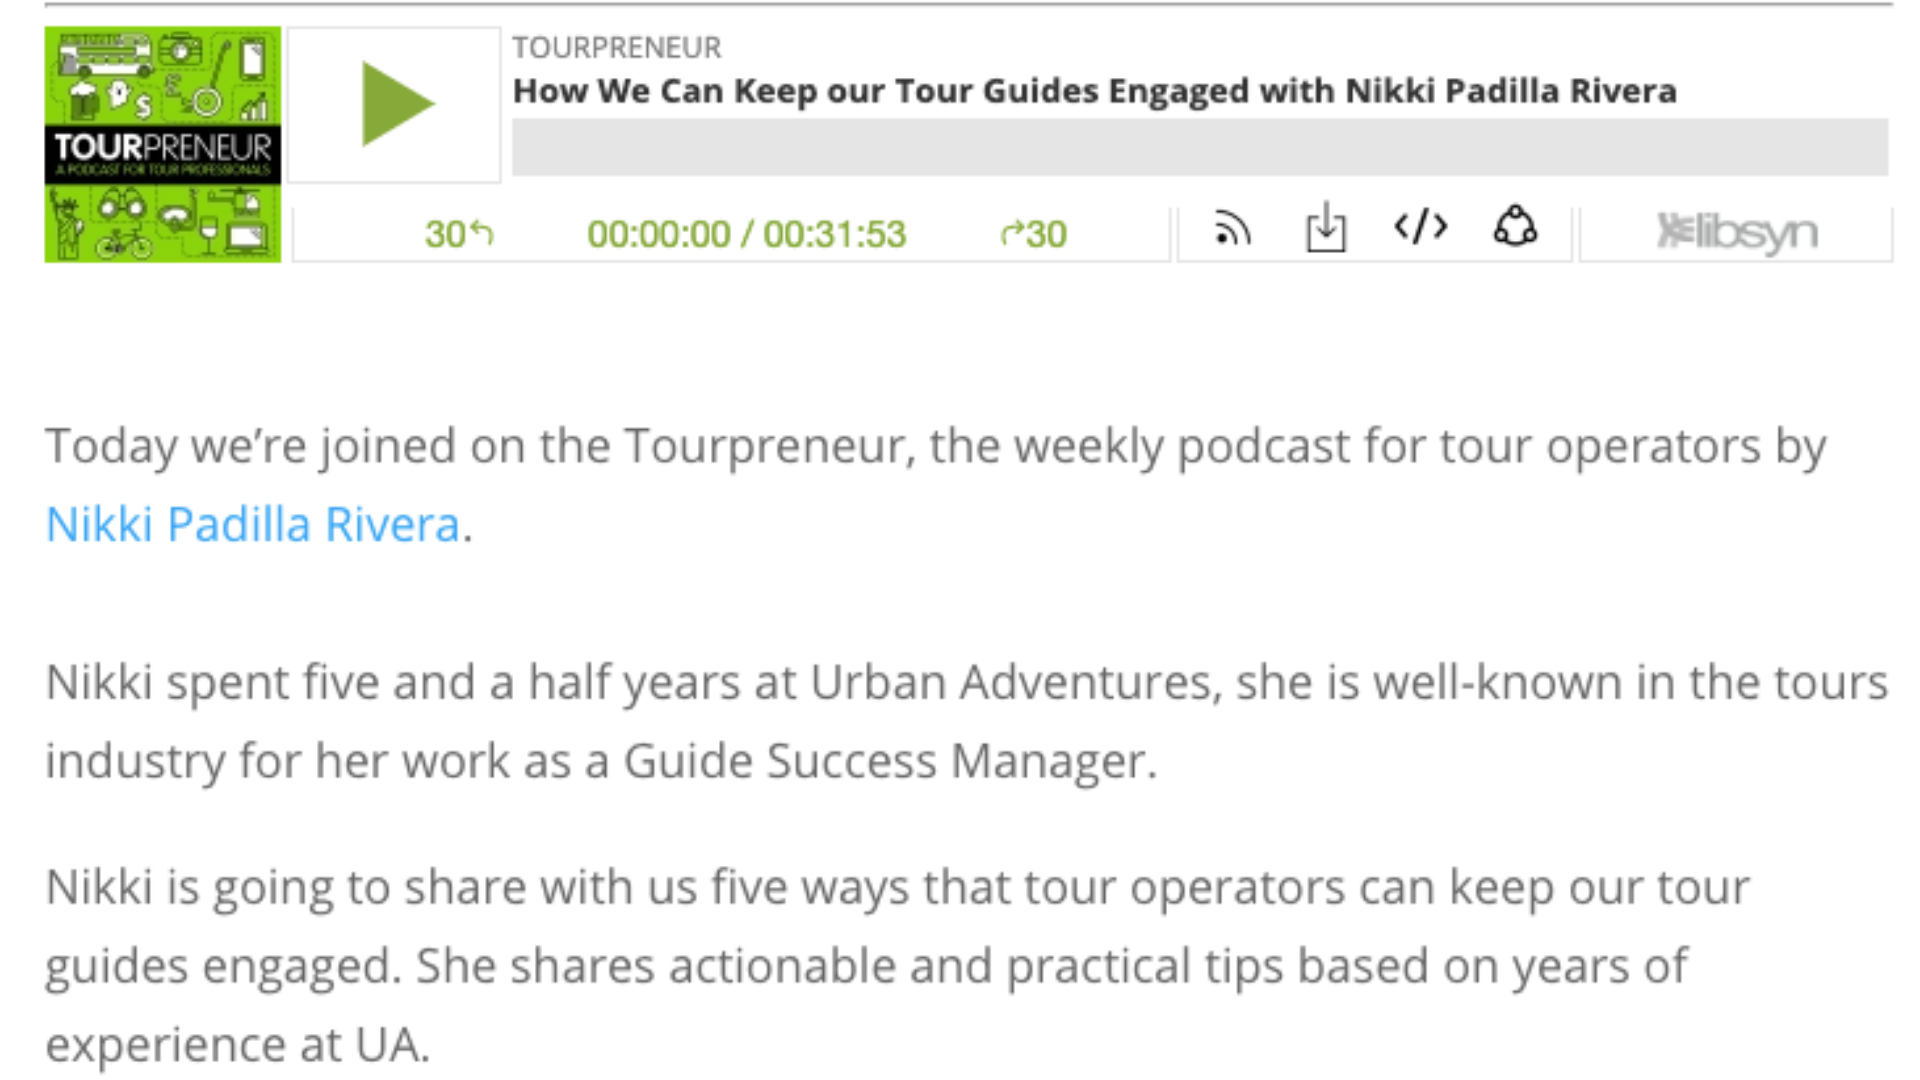 A screenshot of the Tourpreneur podcast, episode 75 about communicating with your tour guide team